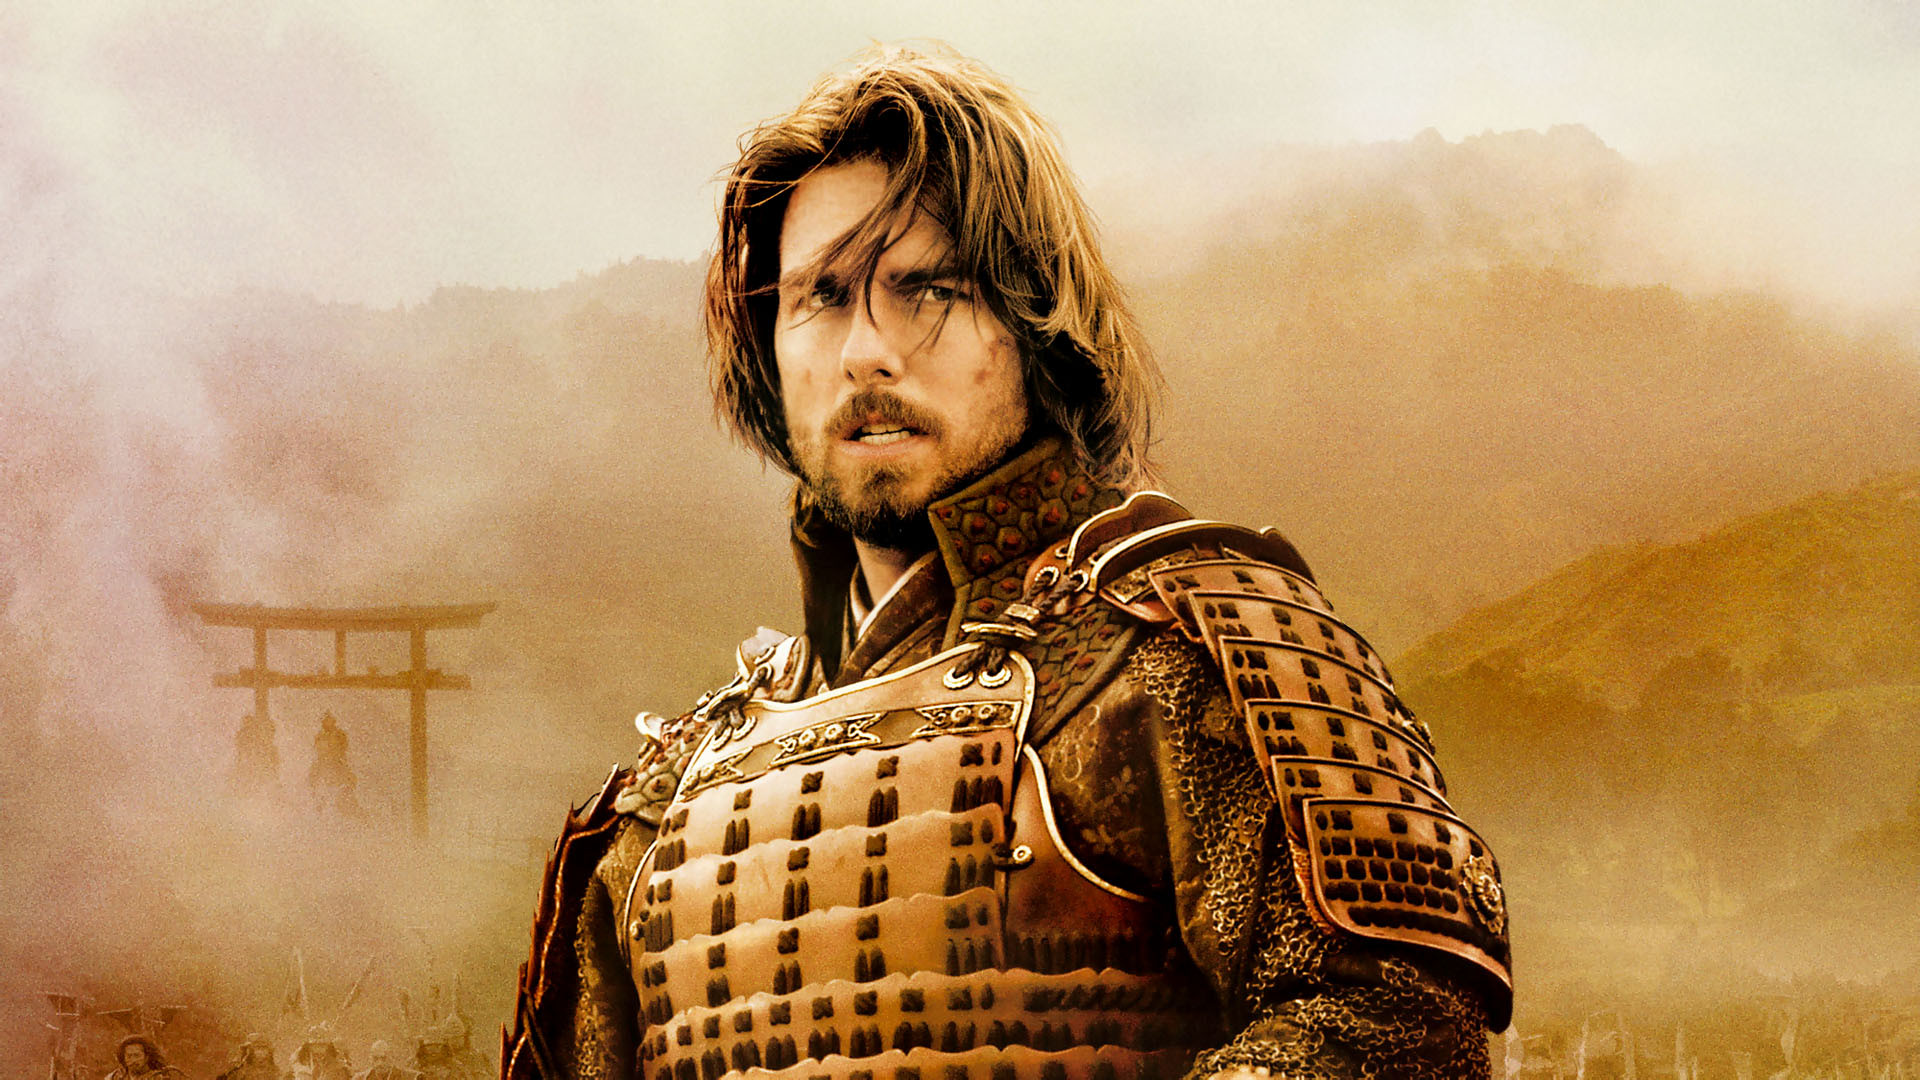 Tom Cruise Last Samurai